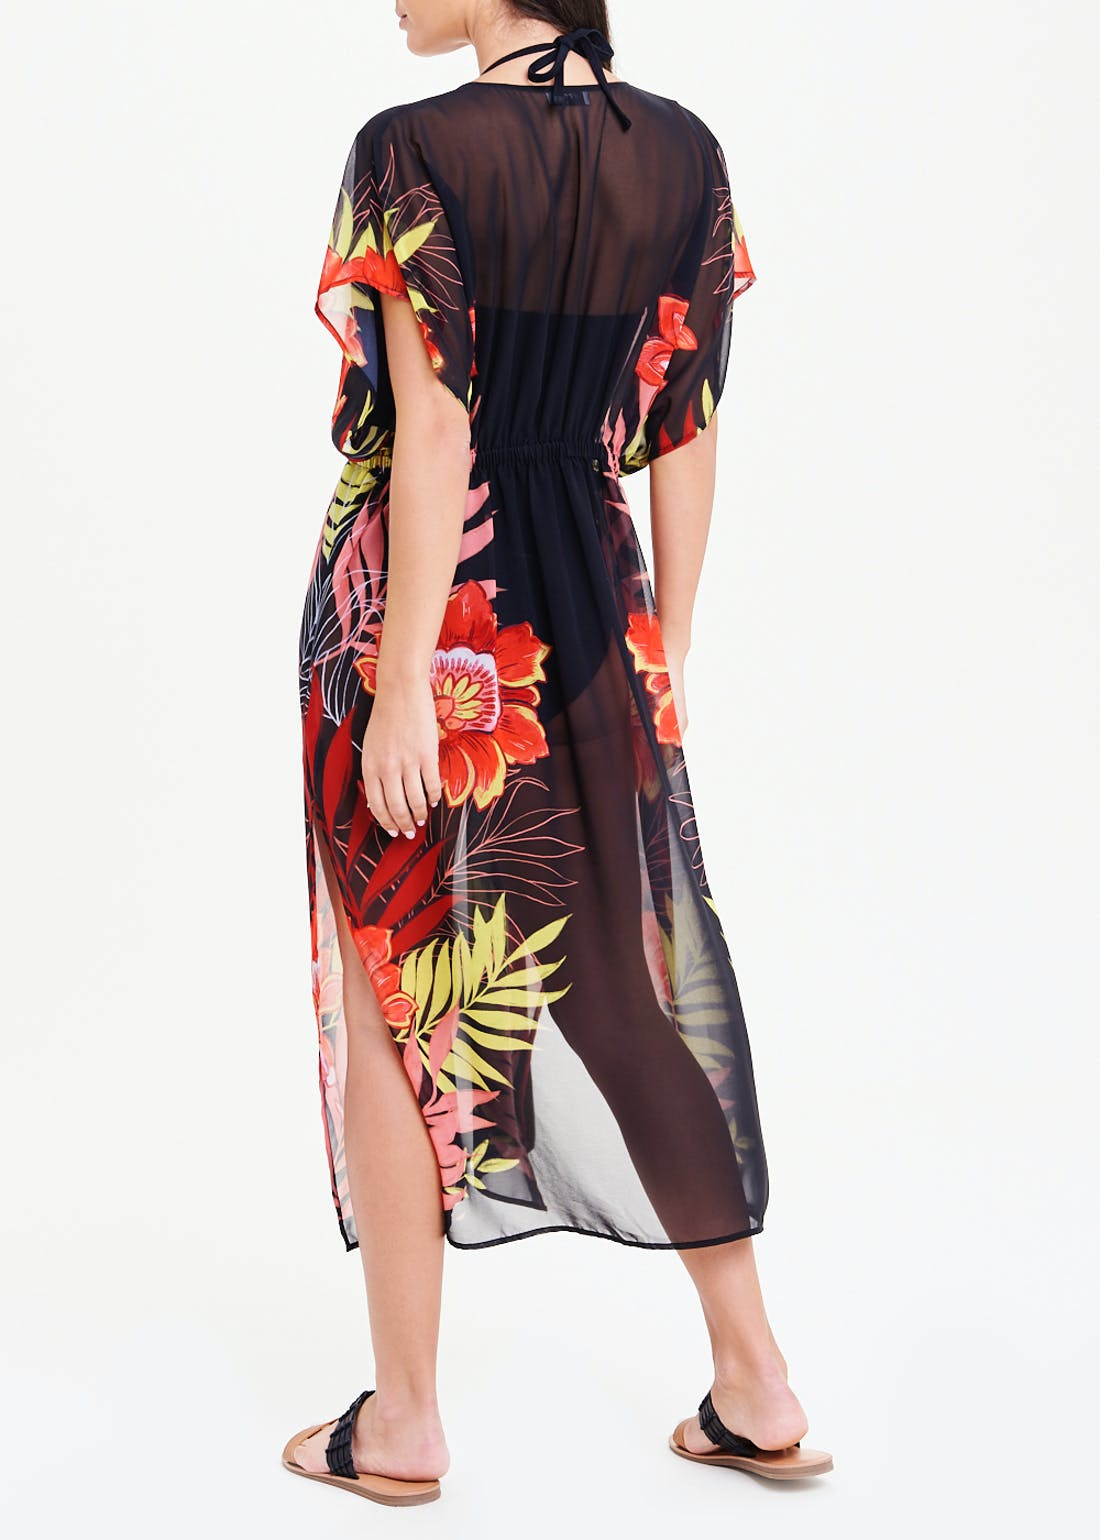 Soon Floral Palm Sheer Beach Cover Up